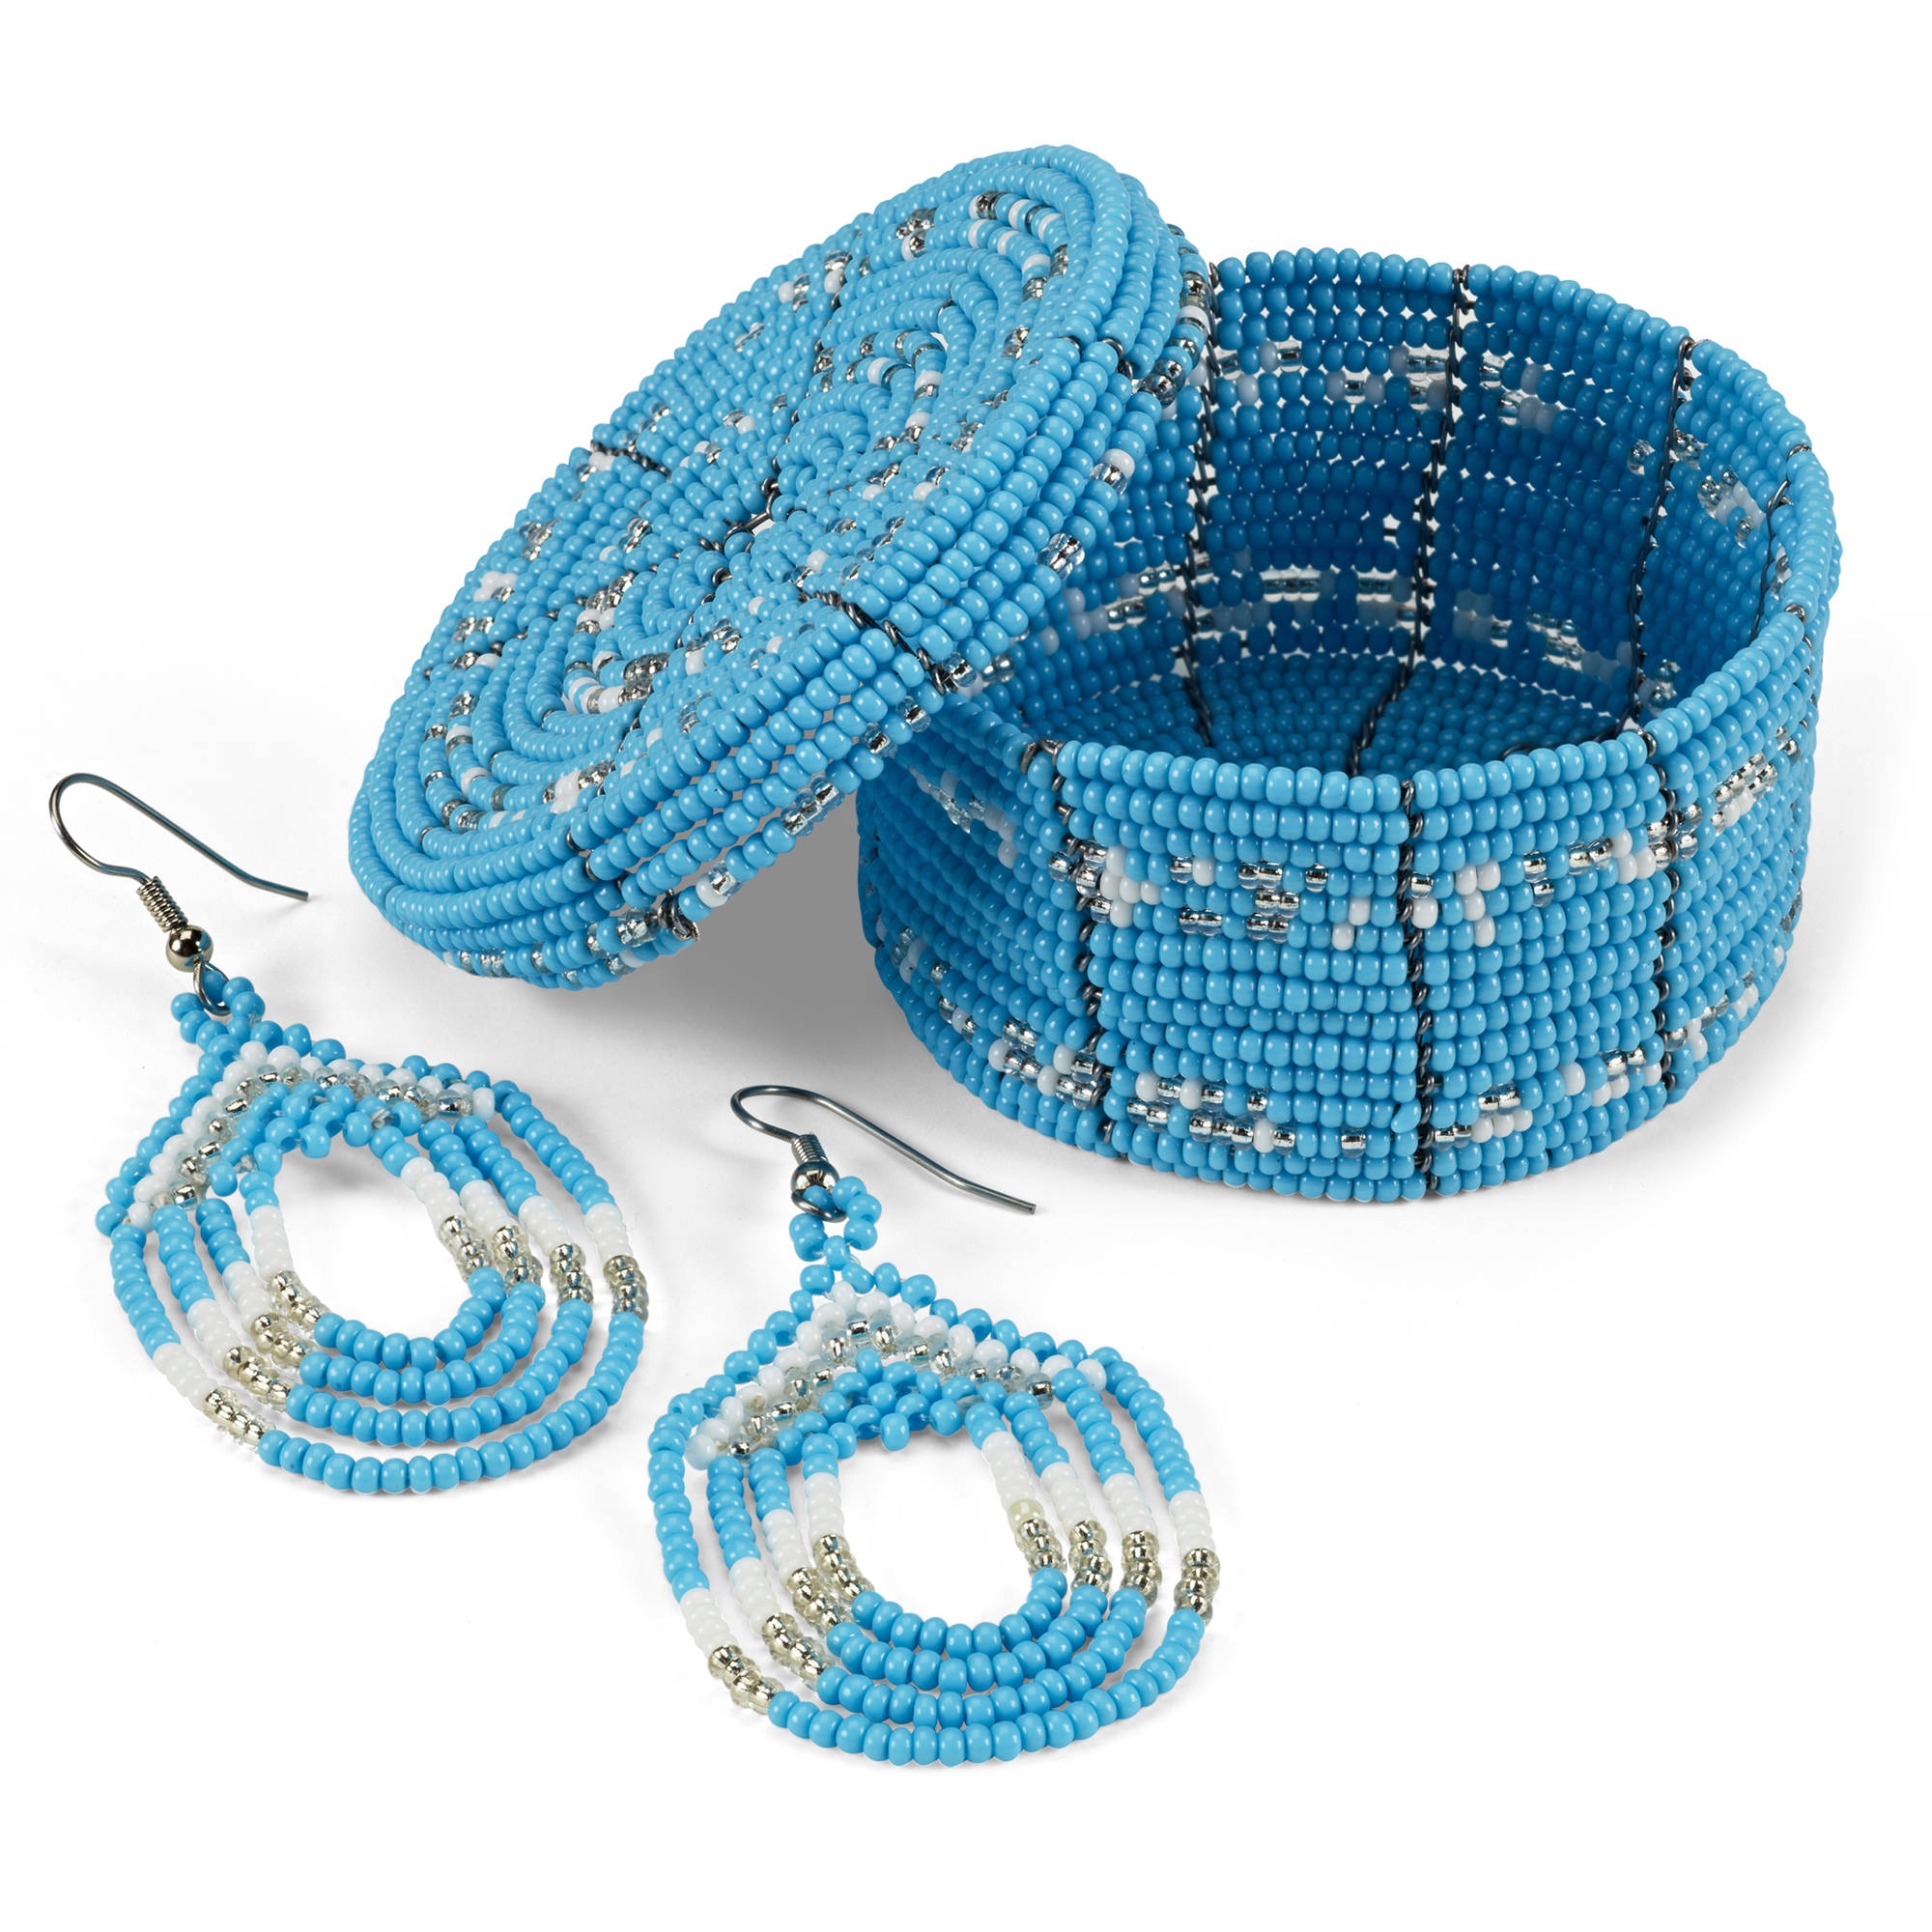 2-Piece Seed Bead Earrings and Box Set by MWEDO for Global Goods Partners